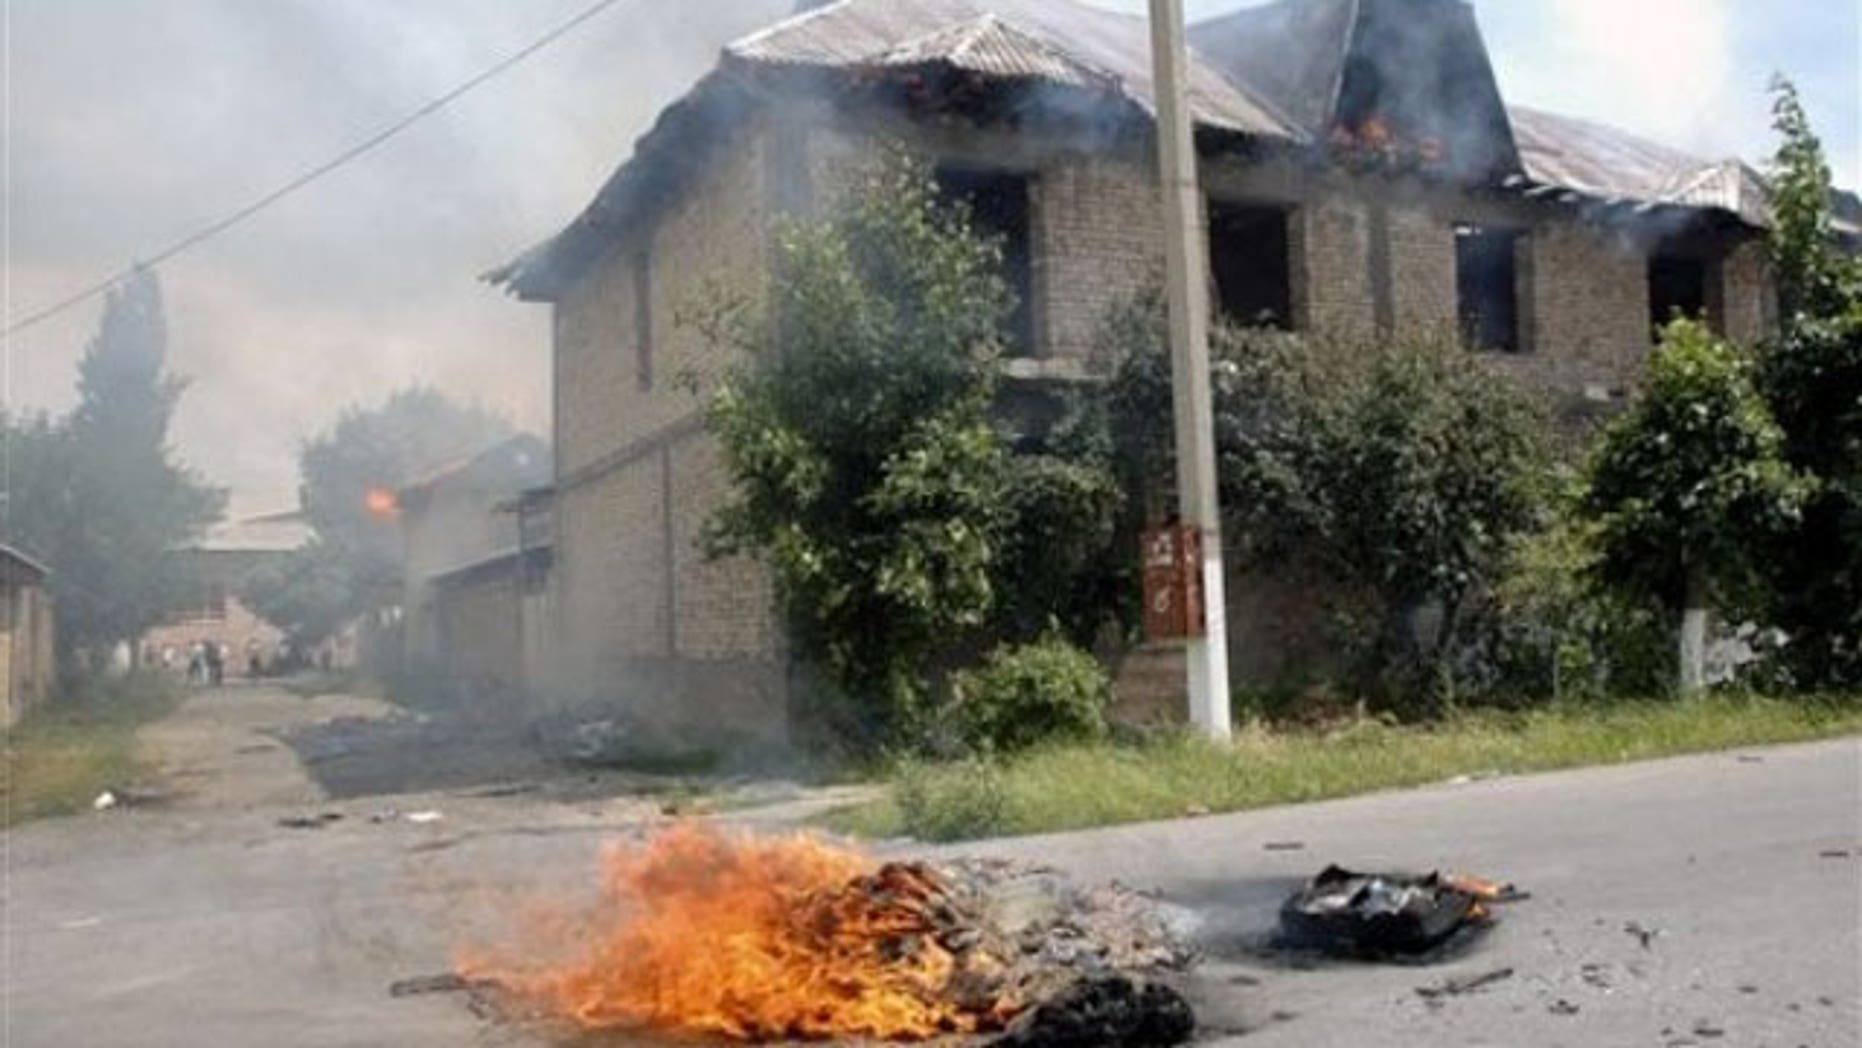 June 13: Ethnic Uzbeks residences burn after being torched by Kyrgyz men, in Jalal-Abad, Kyrgyzstan.